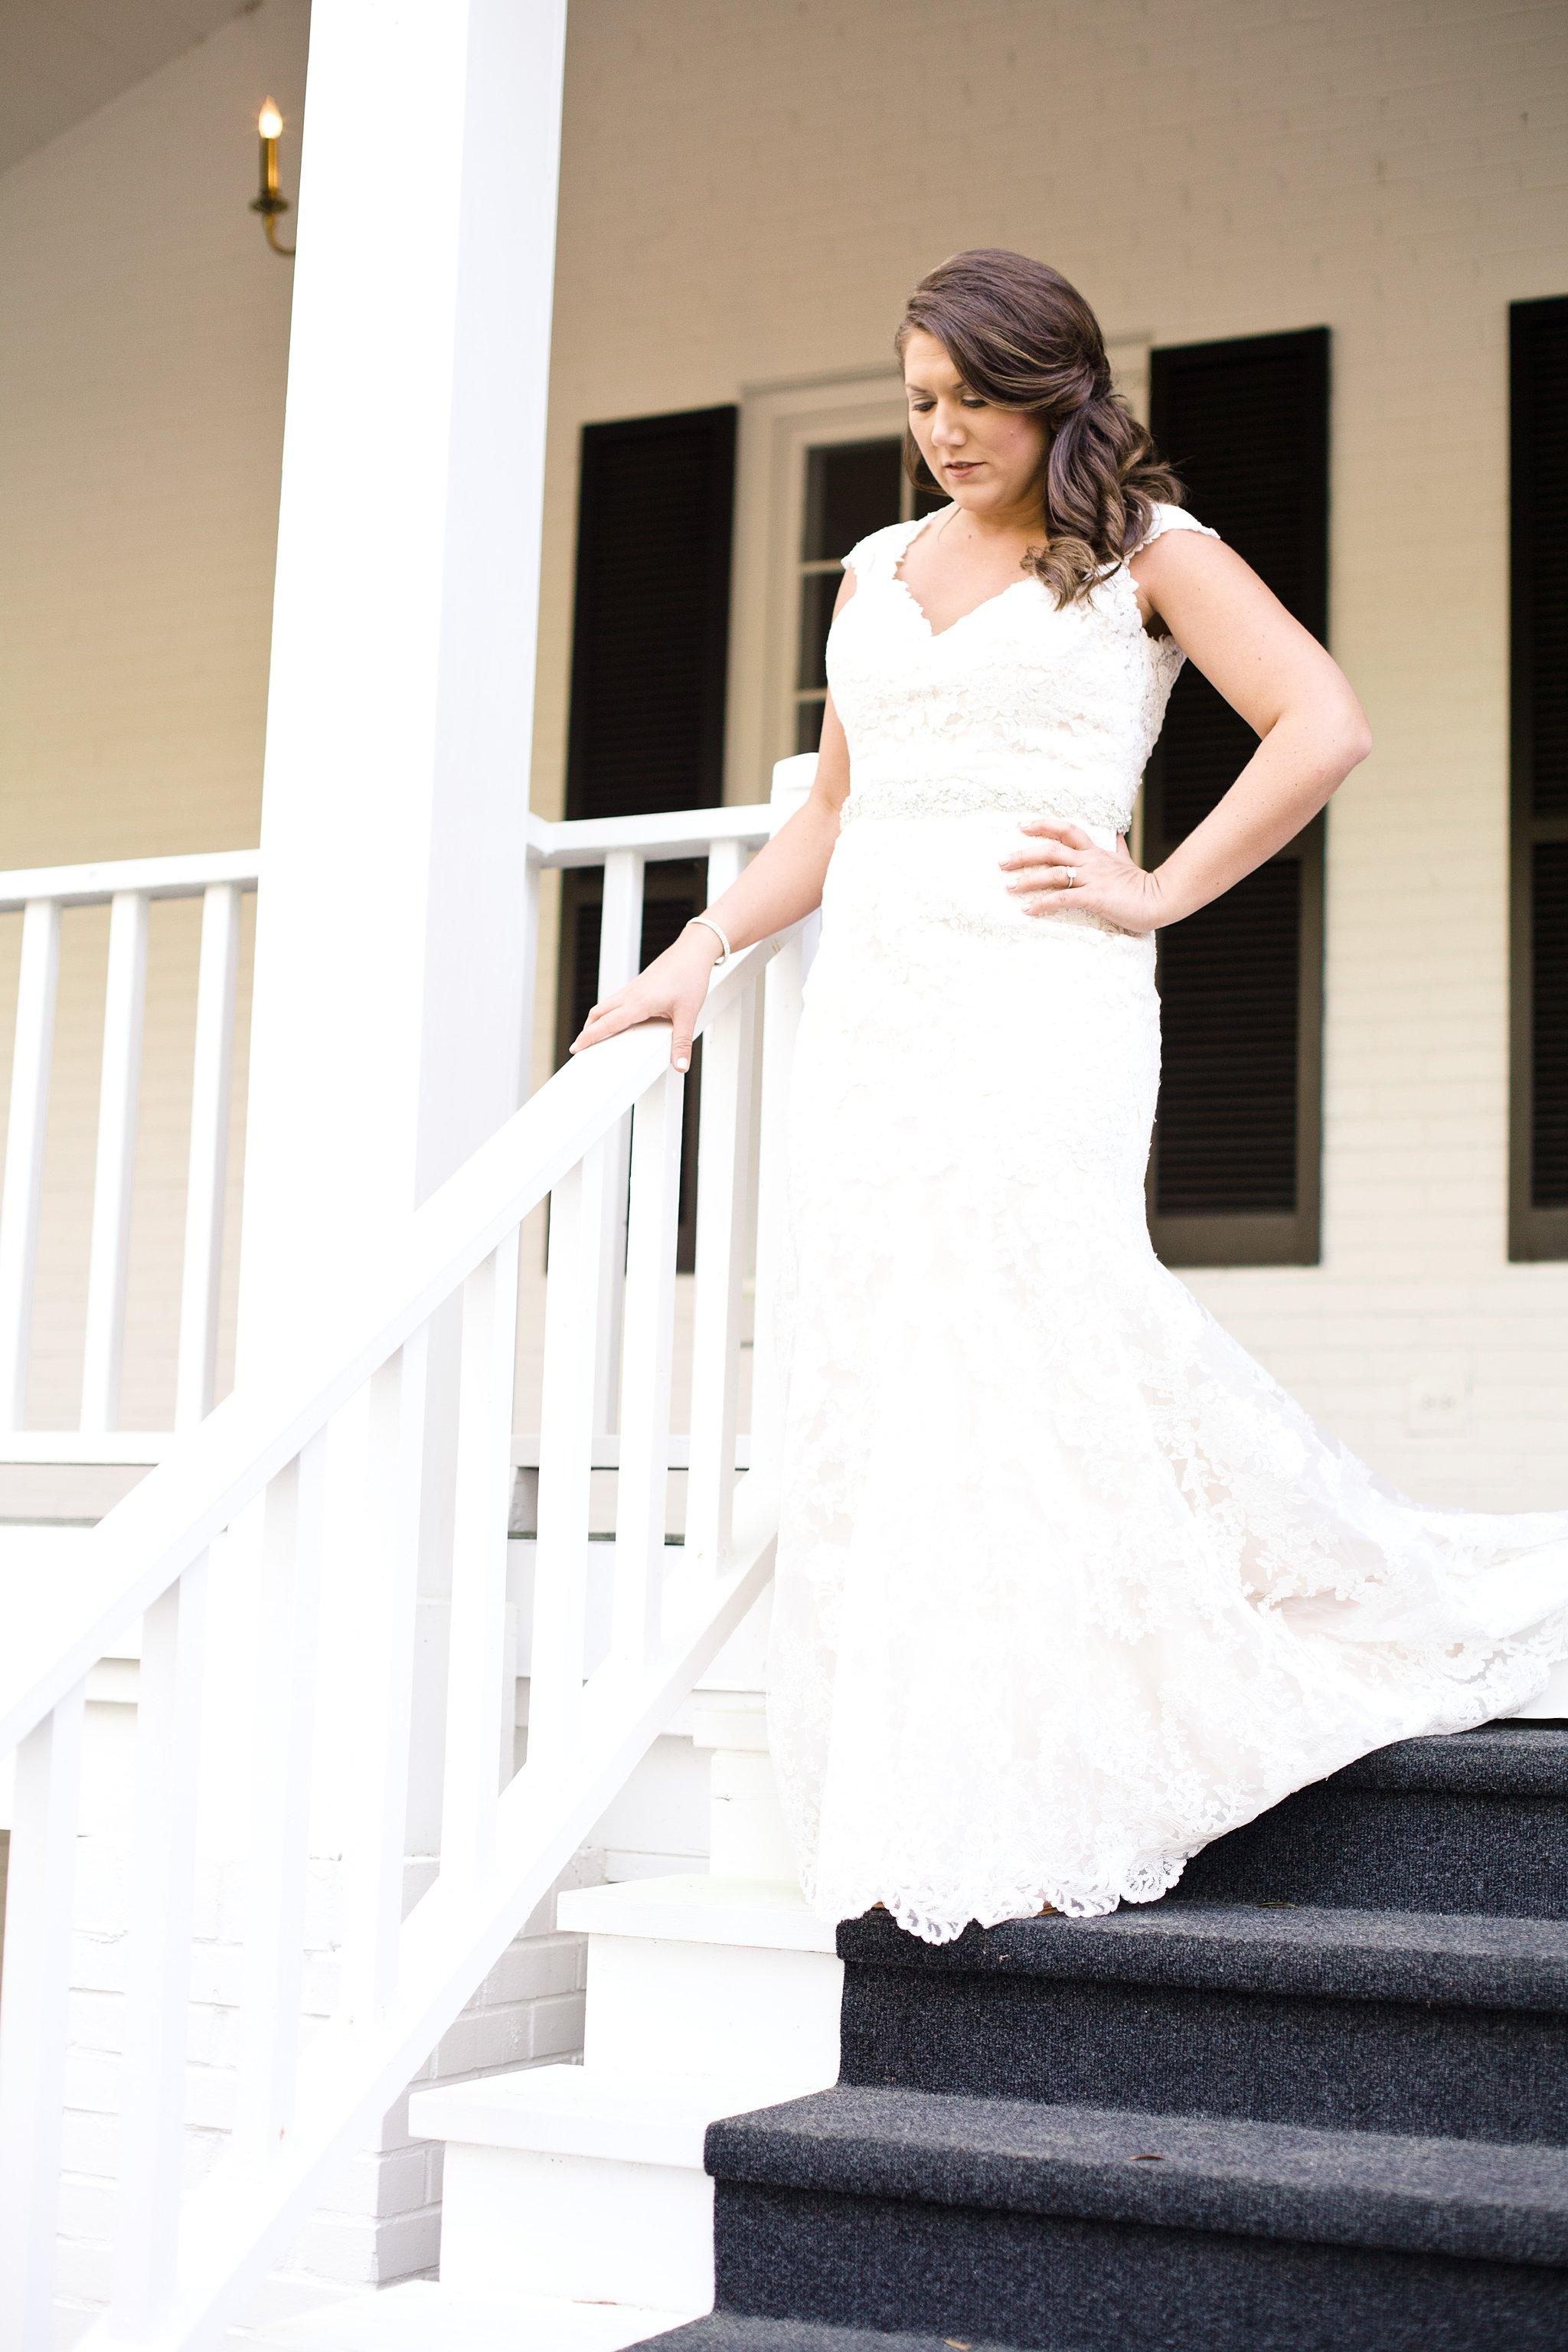 litchfield-golf-country-club-bridal-session-pawleys-island-sc-photos_0145.jpg